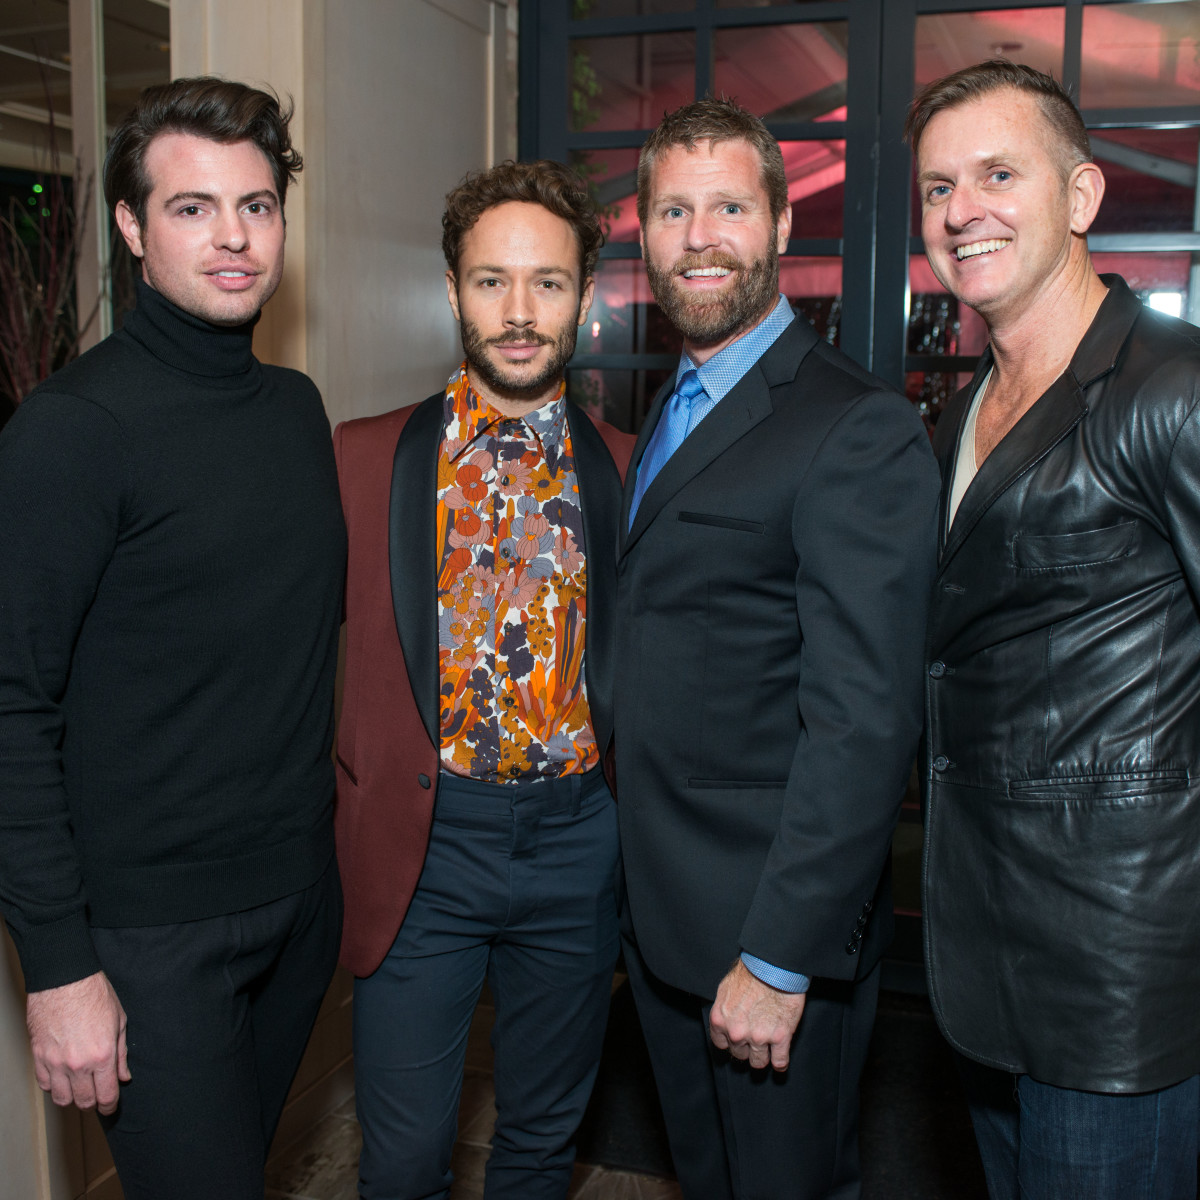 News, Shelby, Dolce & Gabbana dinner, Nov. 2015, Matt Johns, Oliver Halkowich Kevin black